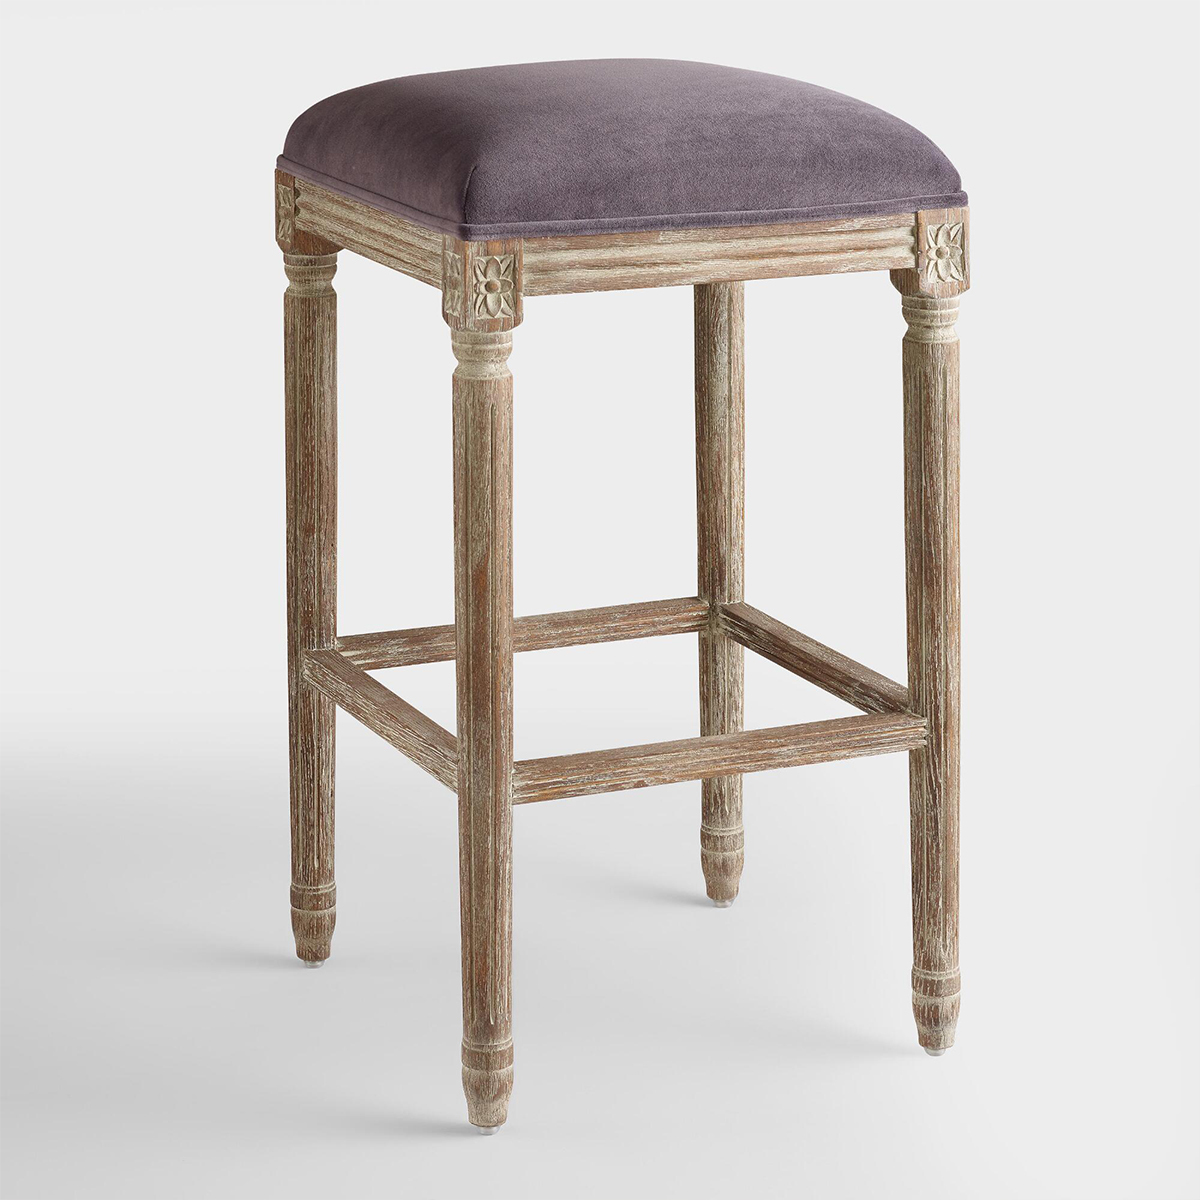 Tall barstool with a wooden frame a purple velvet fabric on top. photo